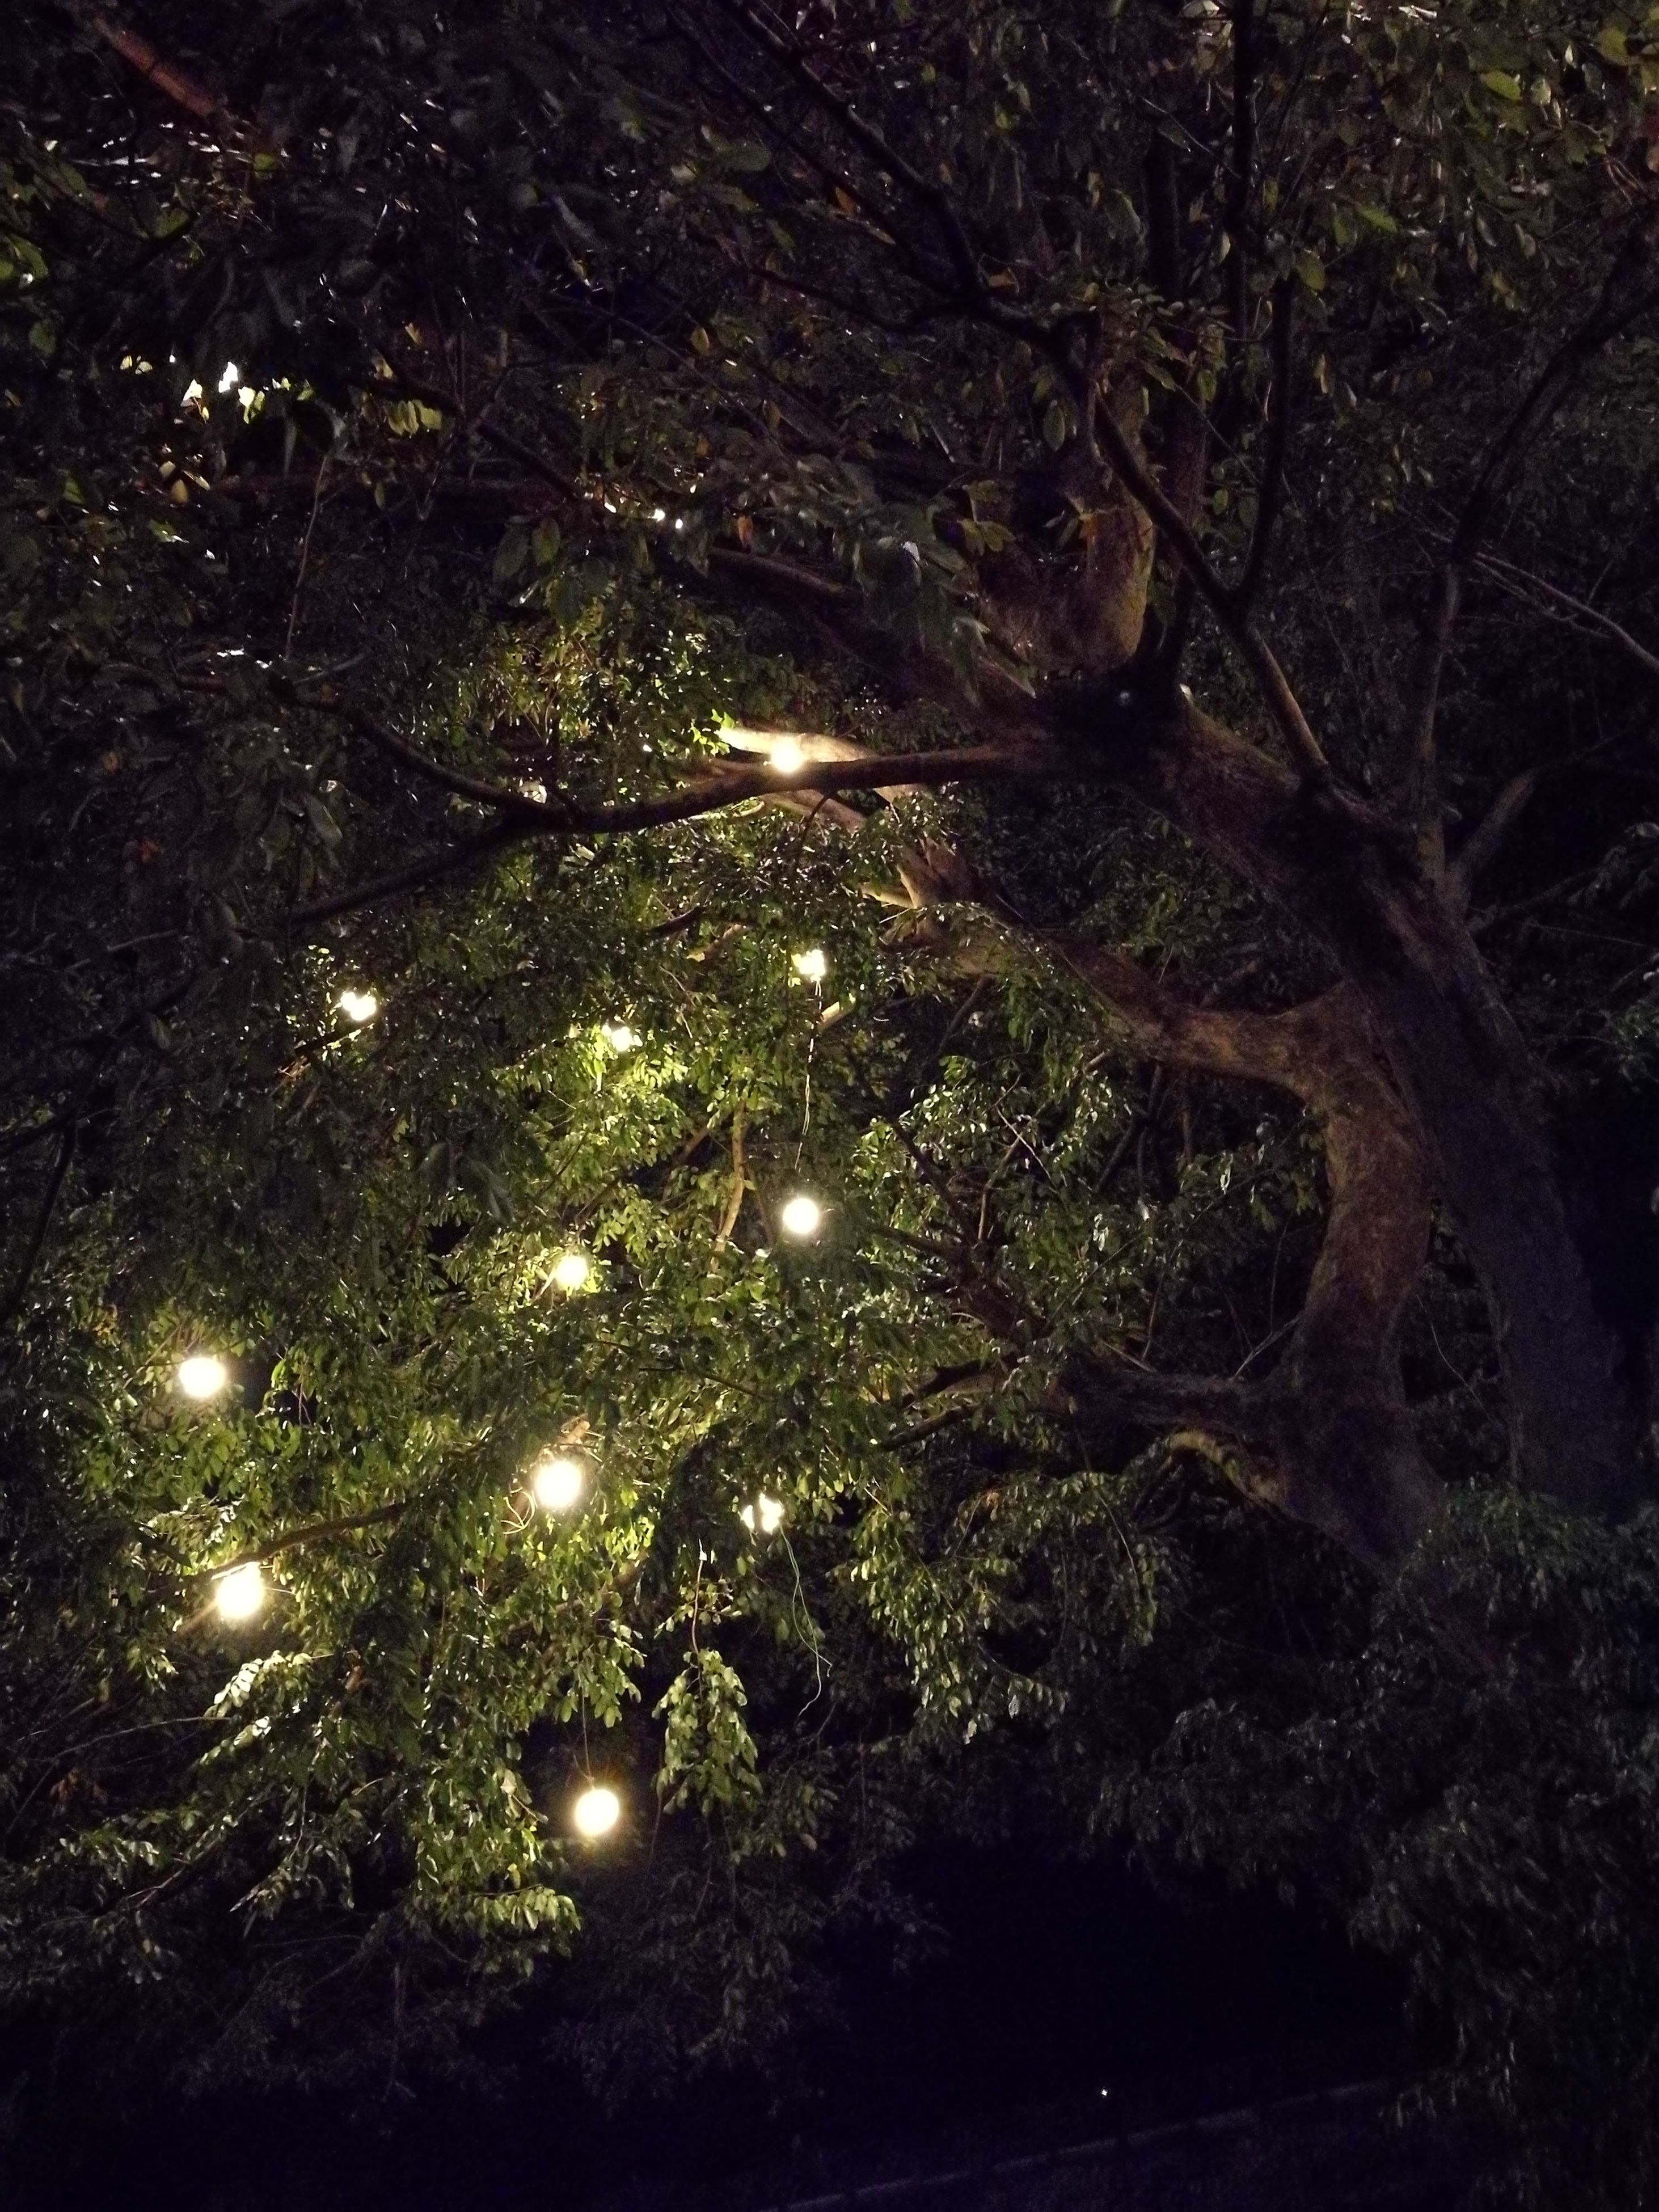 no people, night, low angle view, tree, nature, illuminated, full frame, outdoors, scenics, sky, glittering, backgrounds, beauty in nature, star - space, christmas, christmas decoration, astronomy, close-up, galaxy